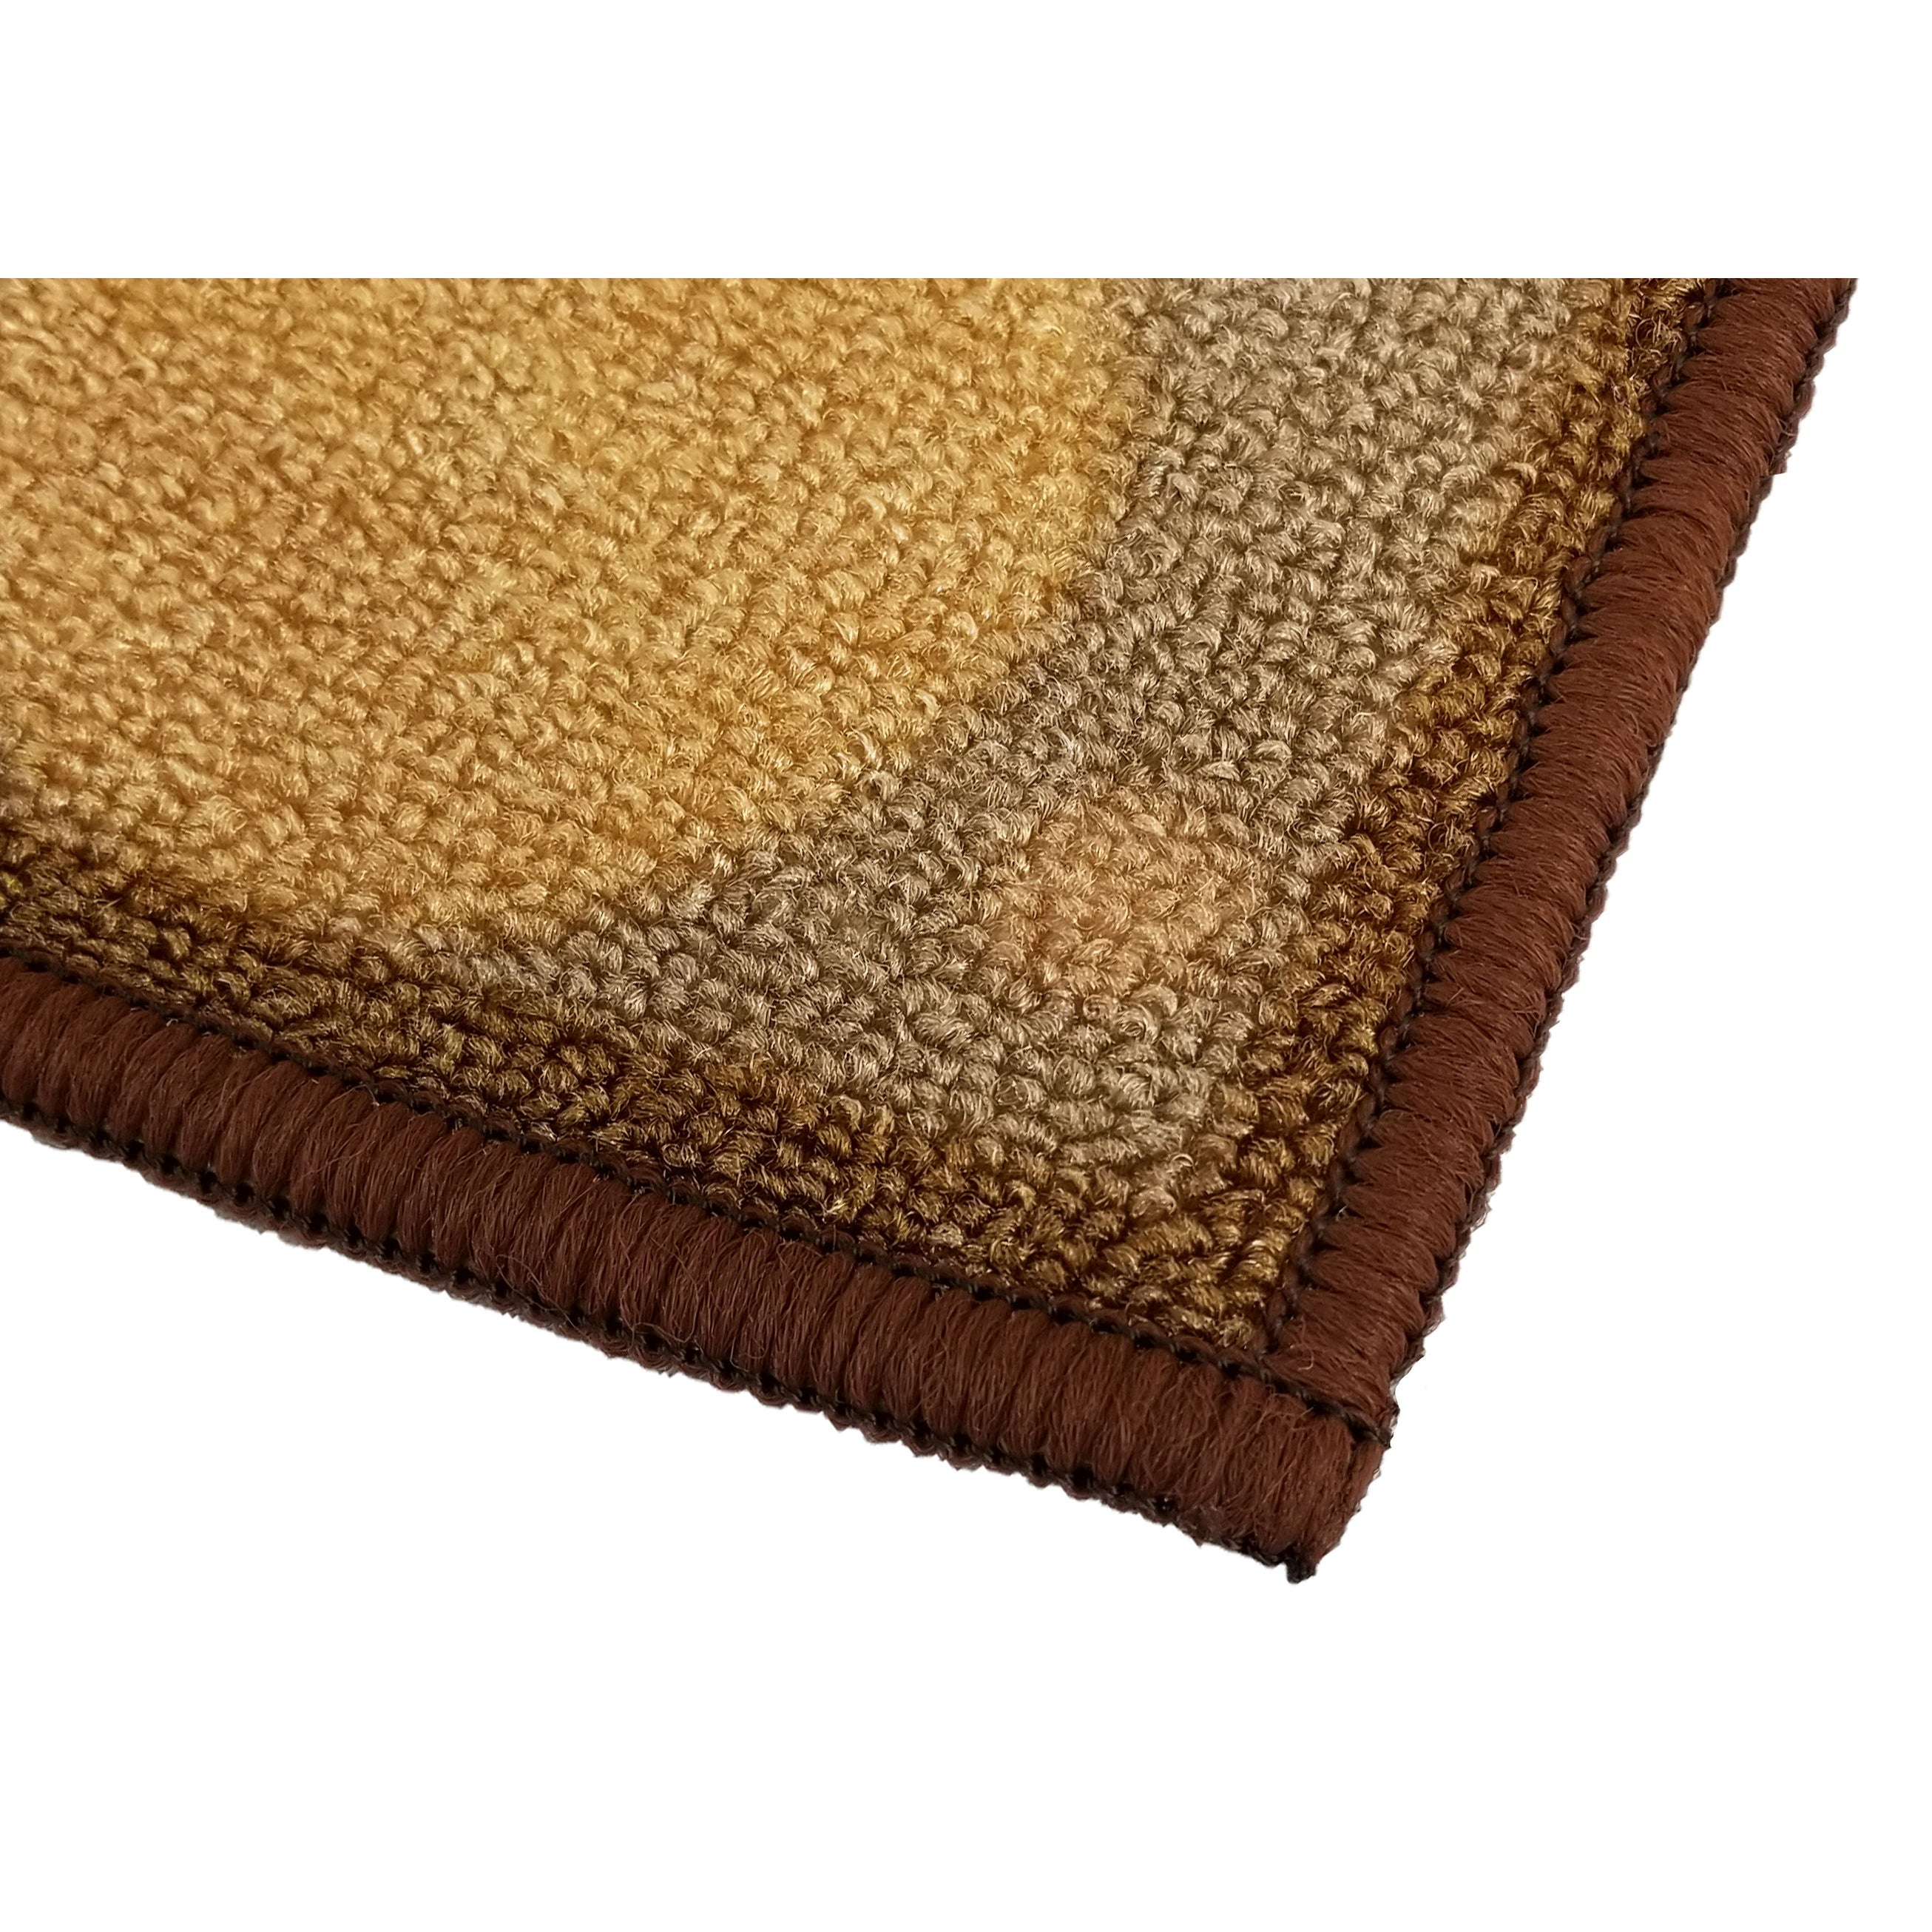 rugs rubber stair with carpets for lowes of home treads tread flooring mats carpet collection nice rug landing ideas